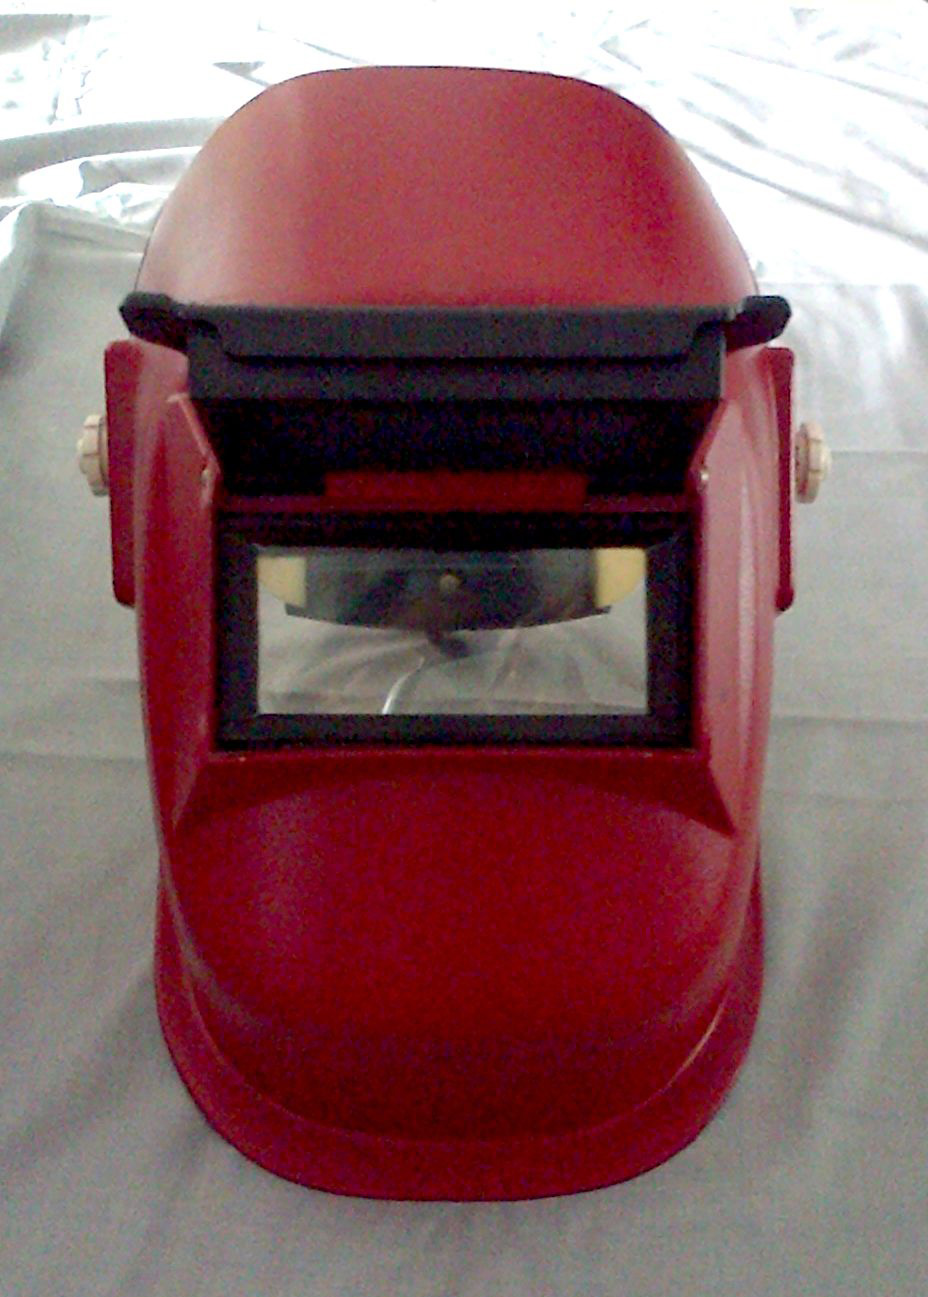 large2 Sellstrom Welding Helmet 290LF 2 inch x 4.25 inch Red PN.29371 2 edit